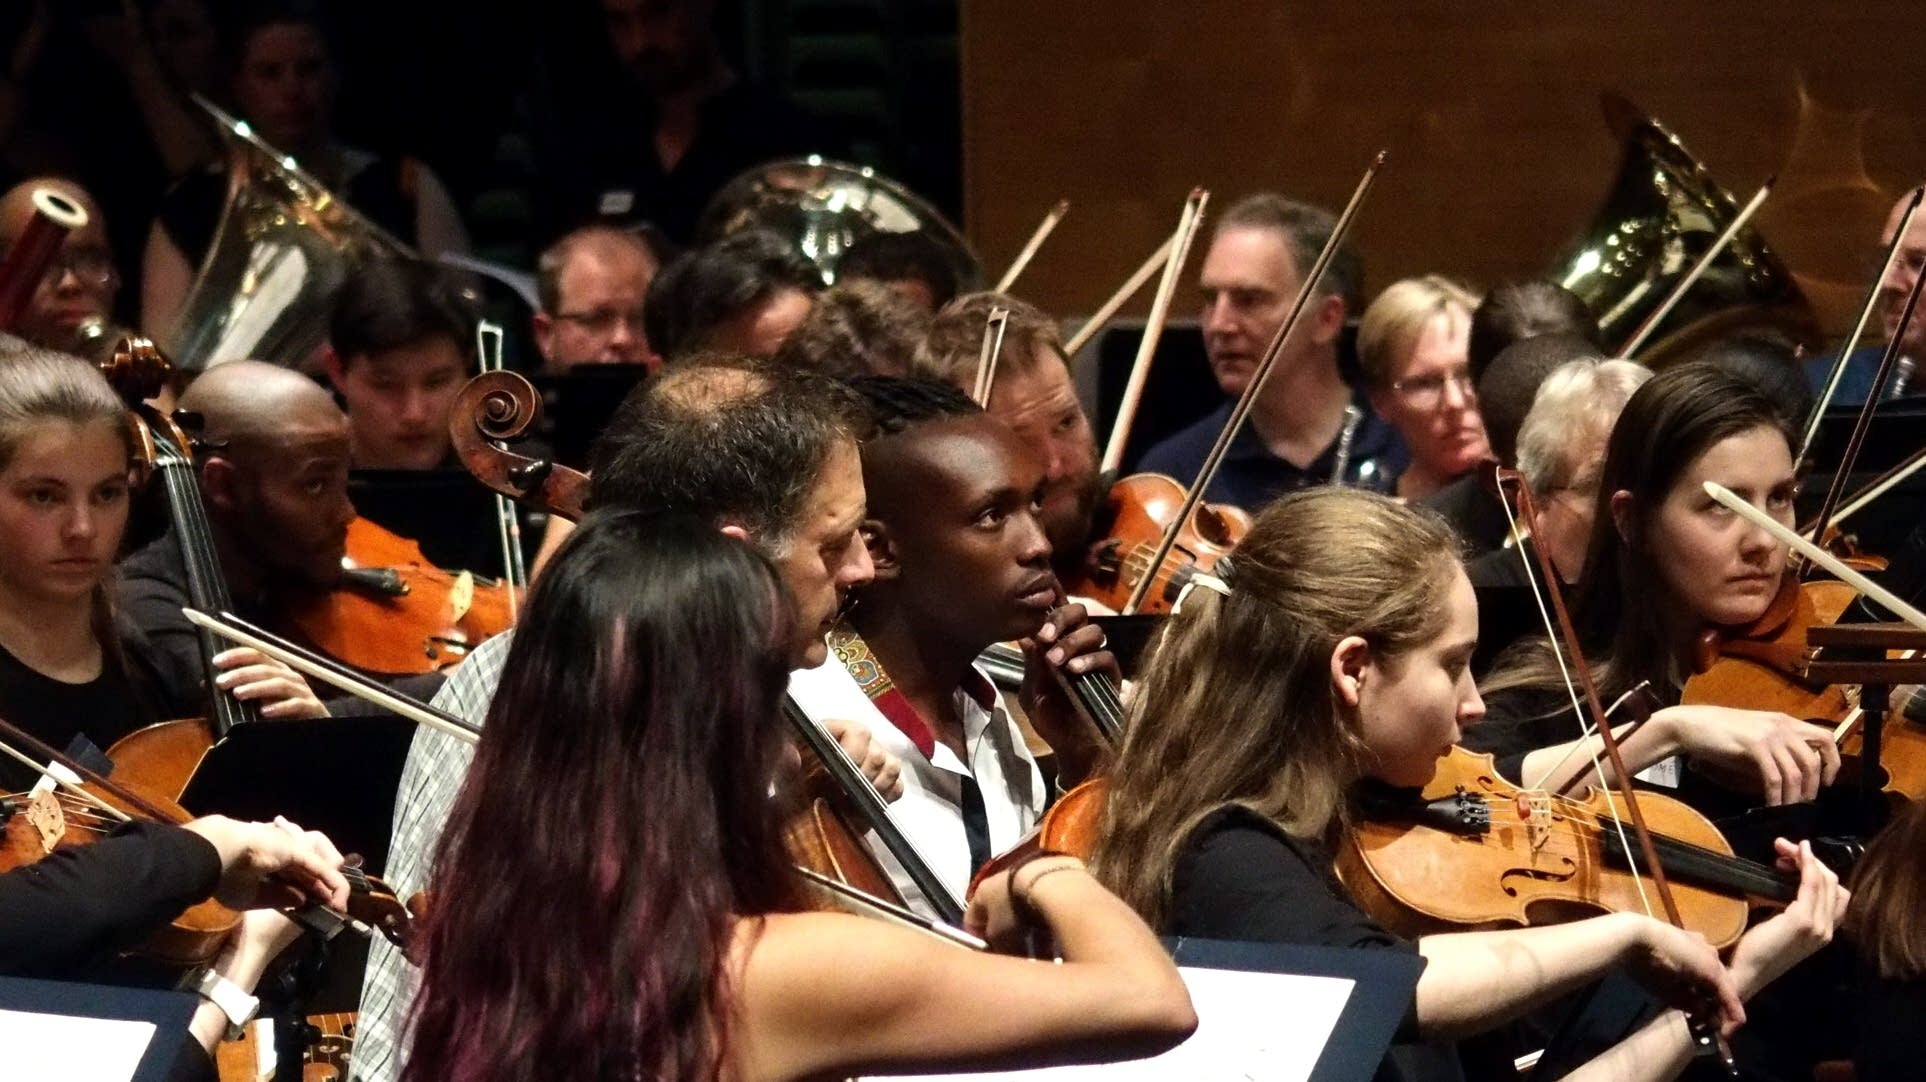 The Minnesota Orchestra with the South African National Youth Orchestra